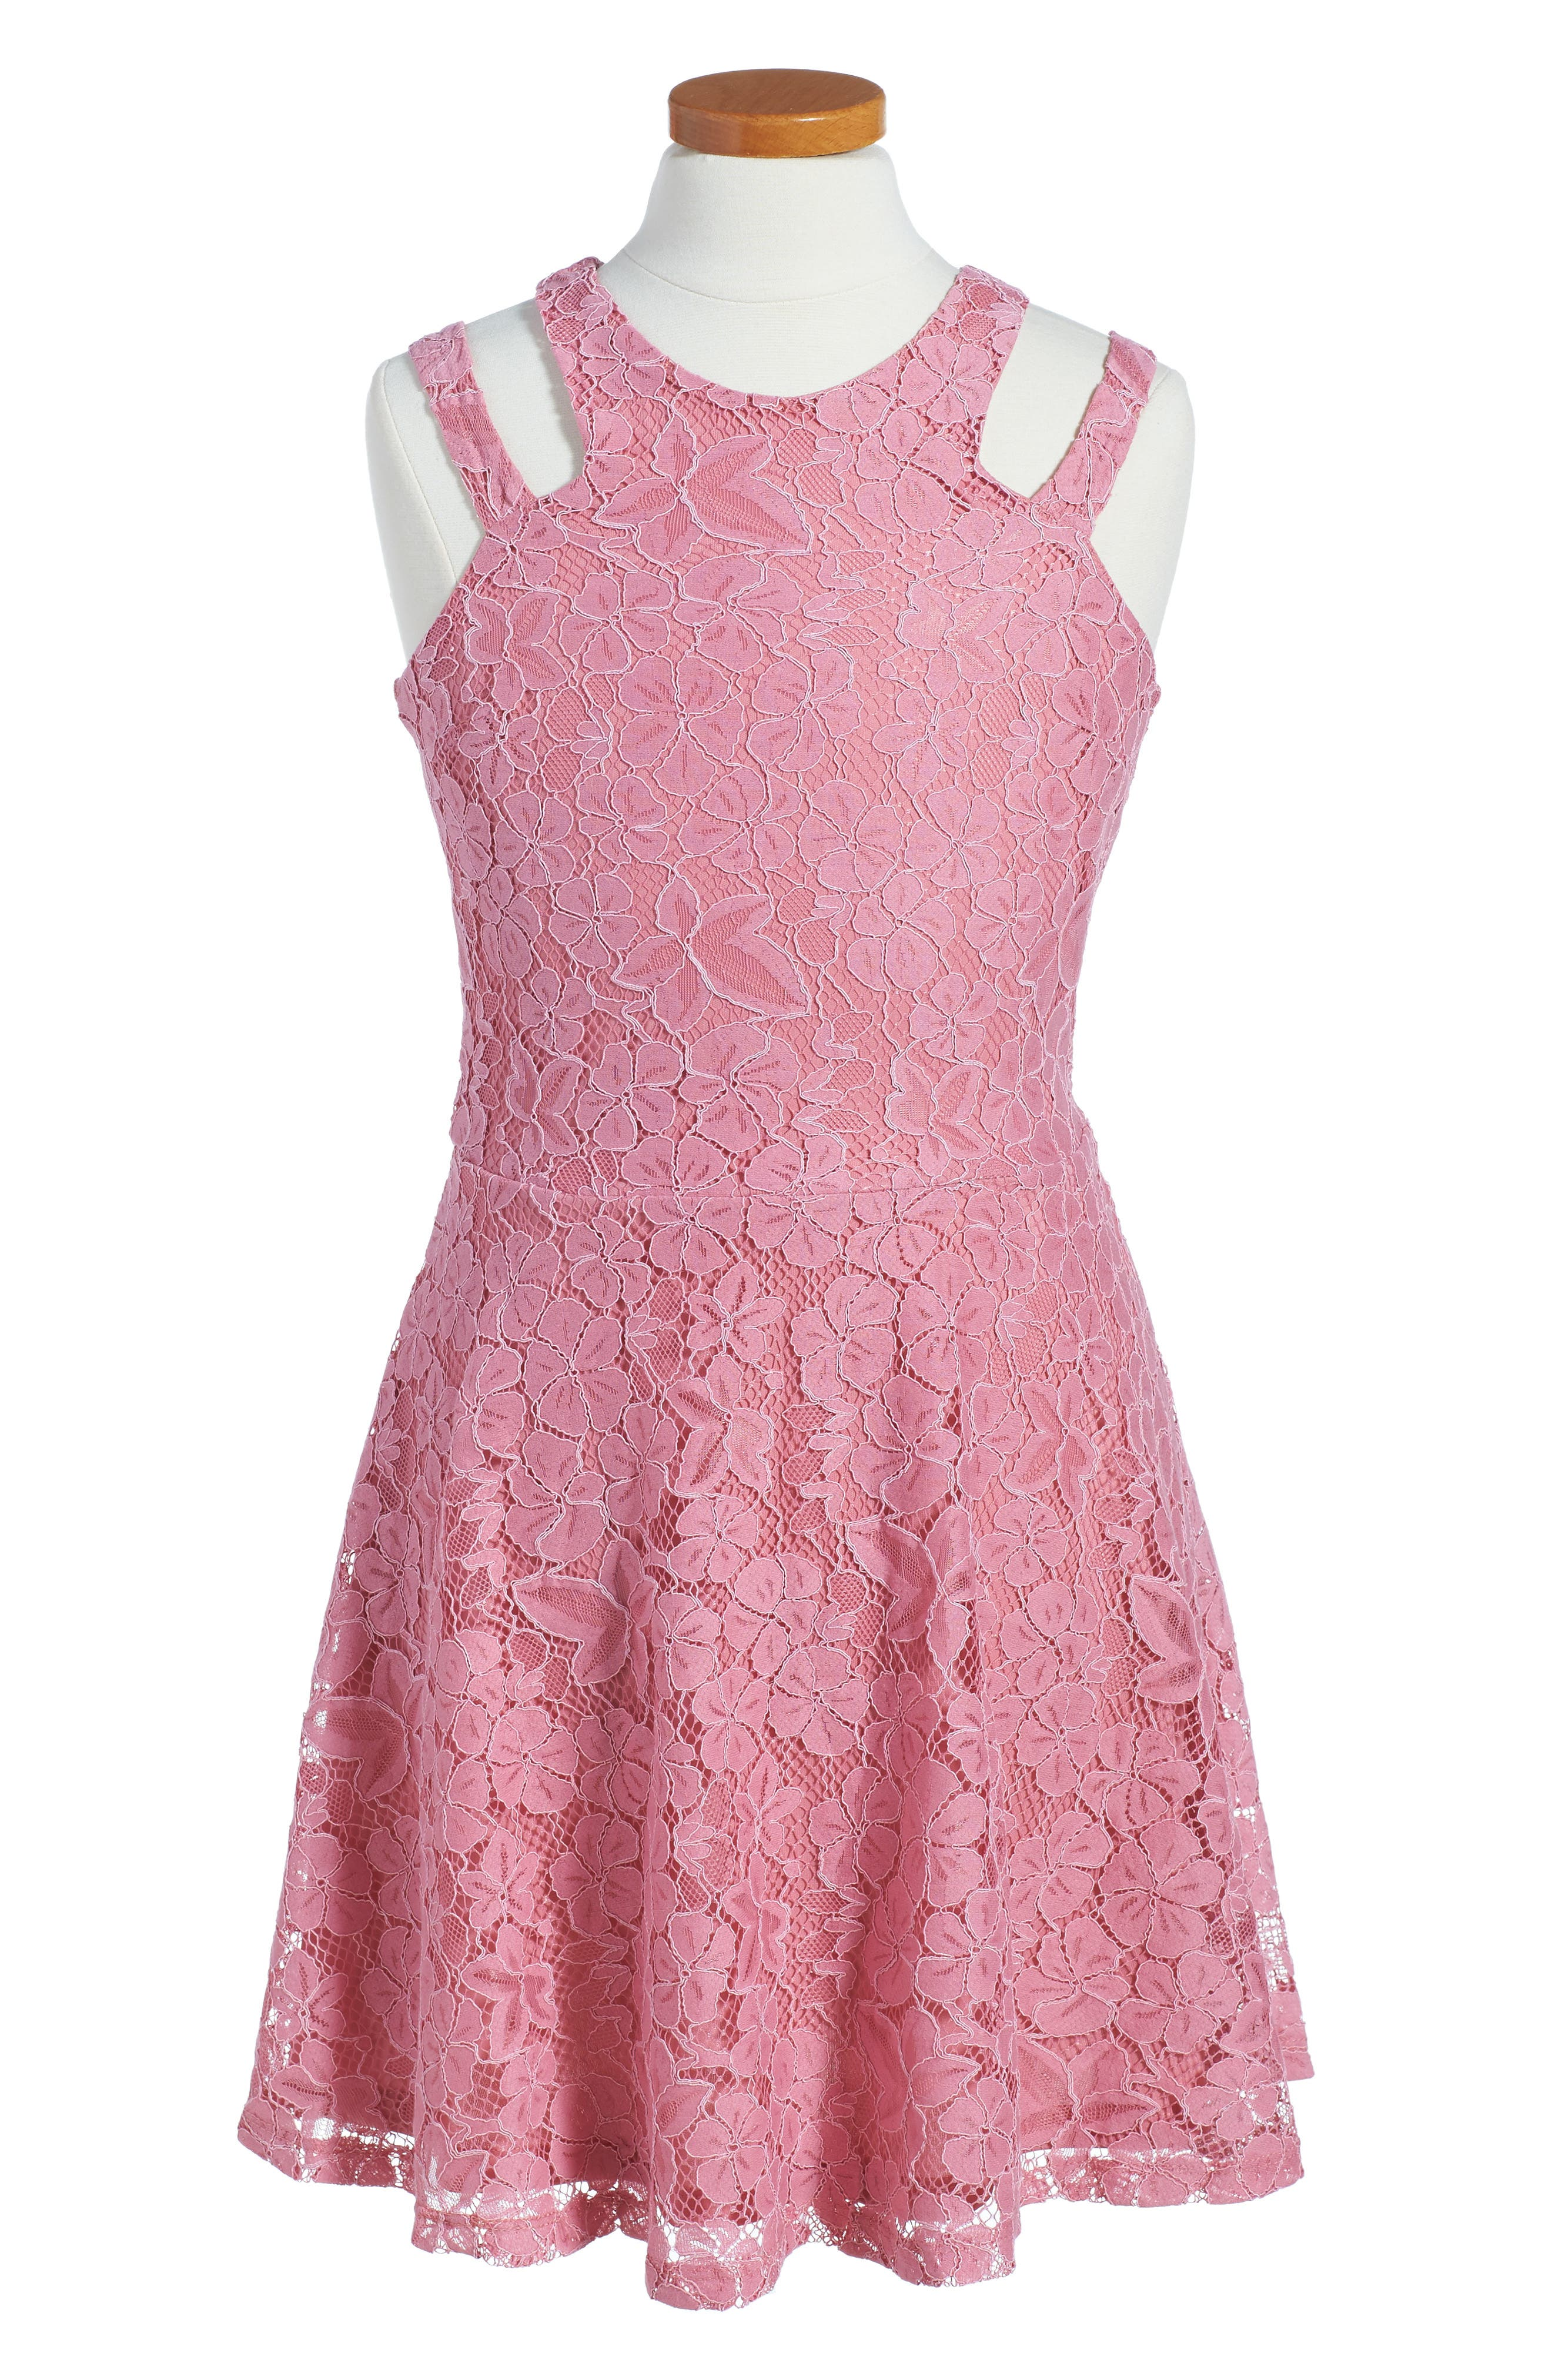 Penelope Tree Lace Sleeveless Dress (Big Girls)